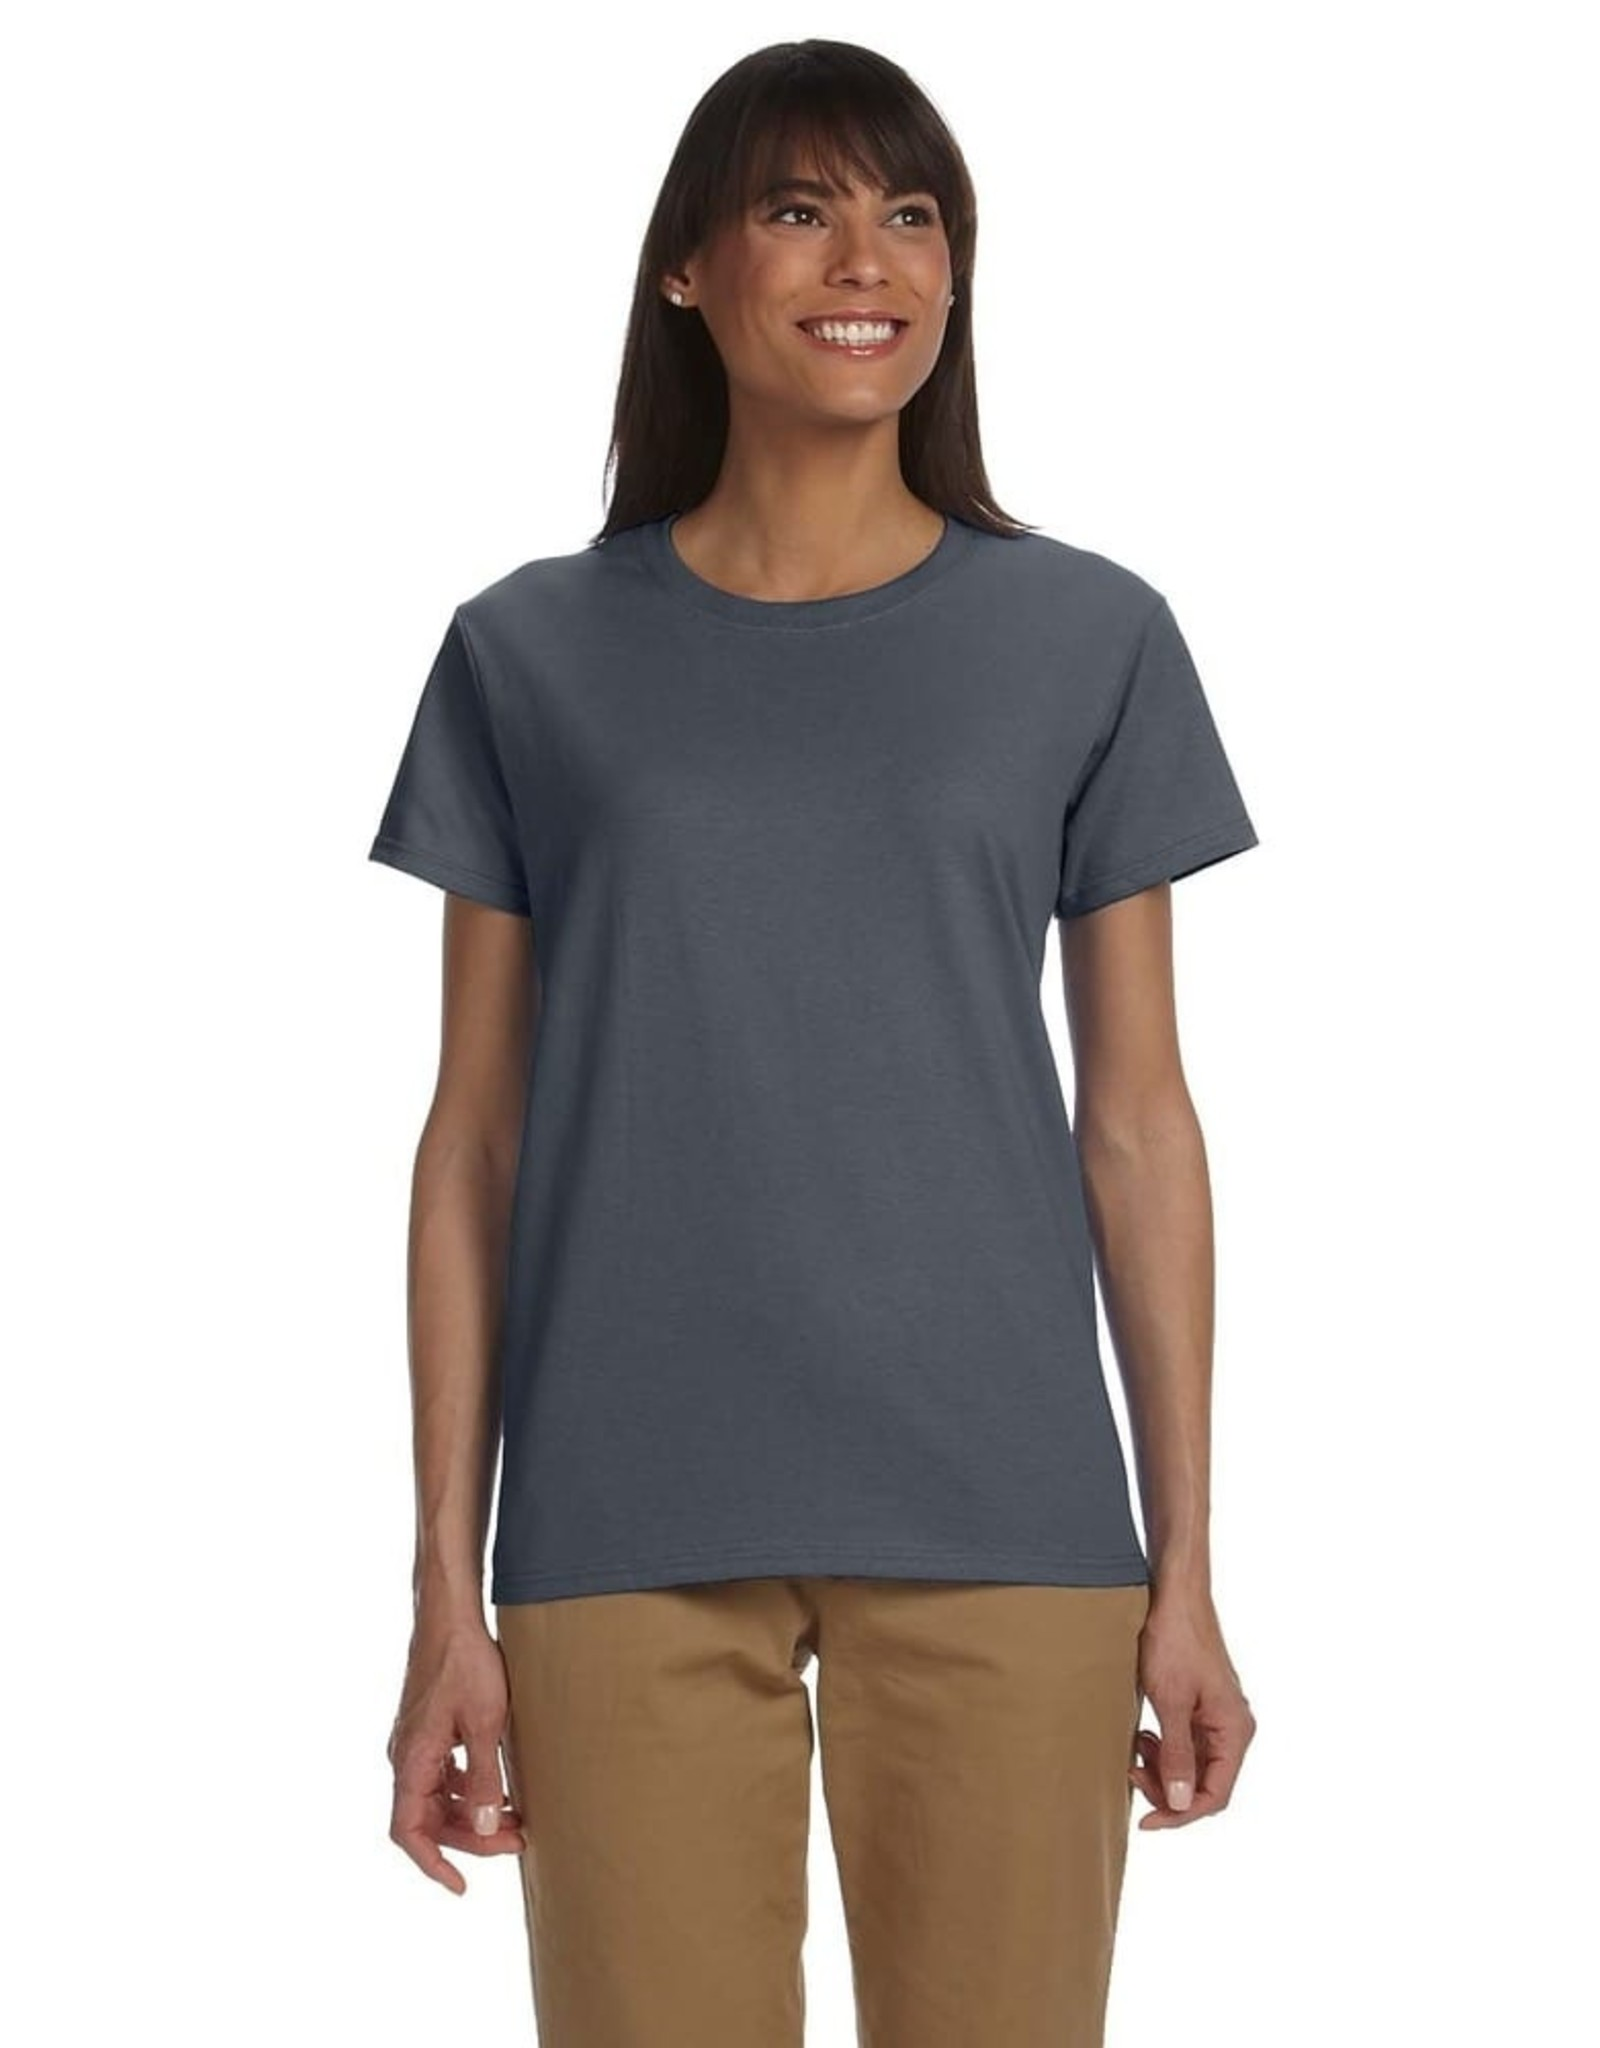 GILDAN T-SHIRTS Gildan G200L - LADIES, SEVERAL  COLORS